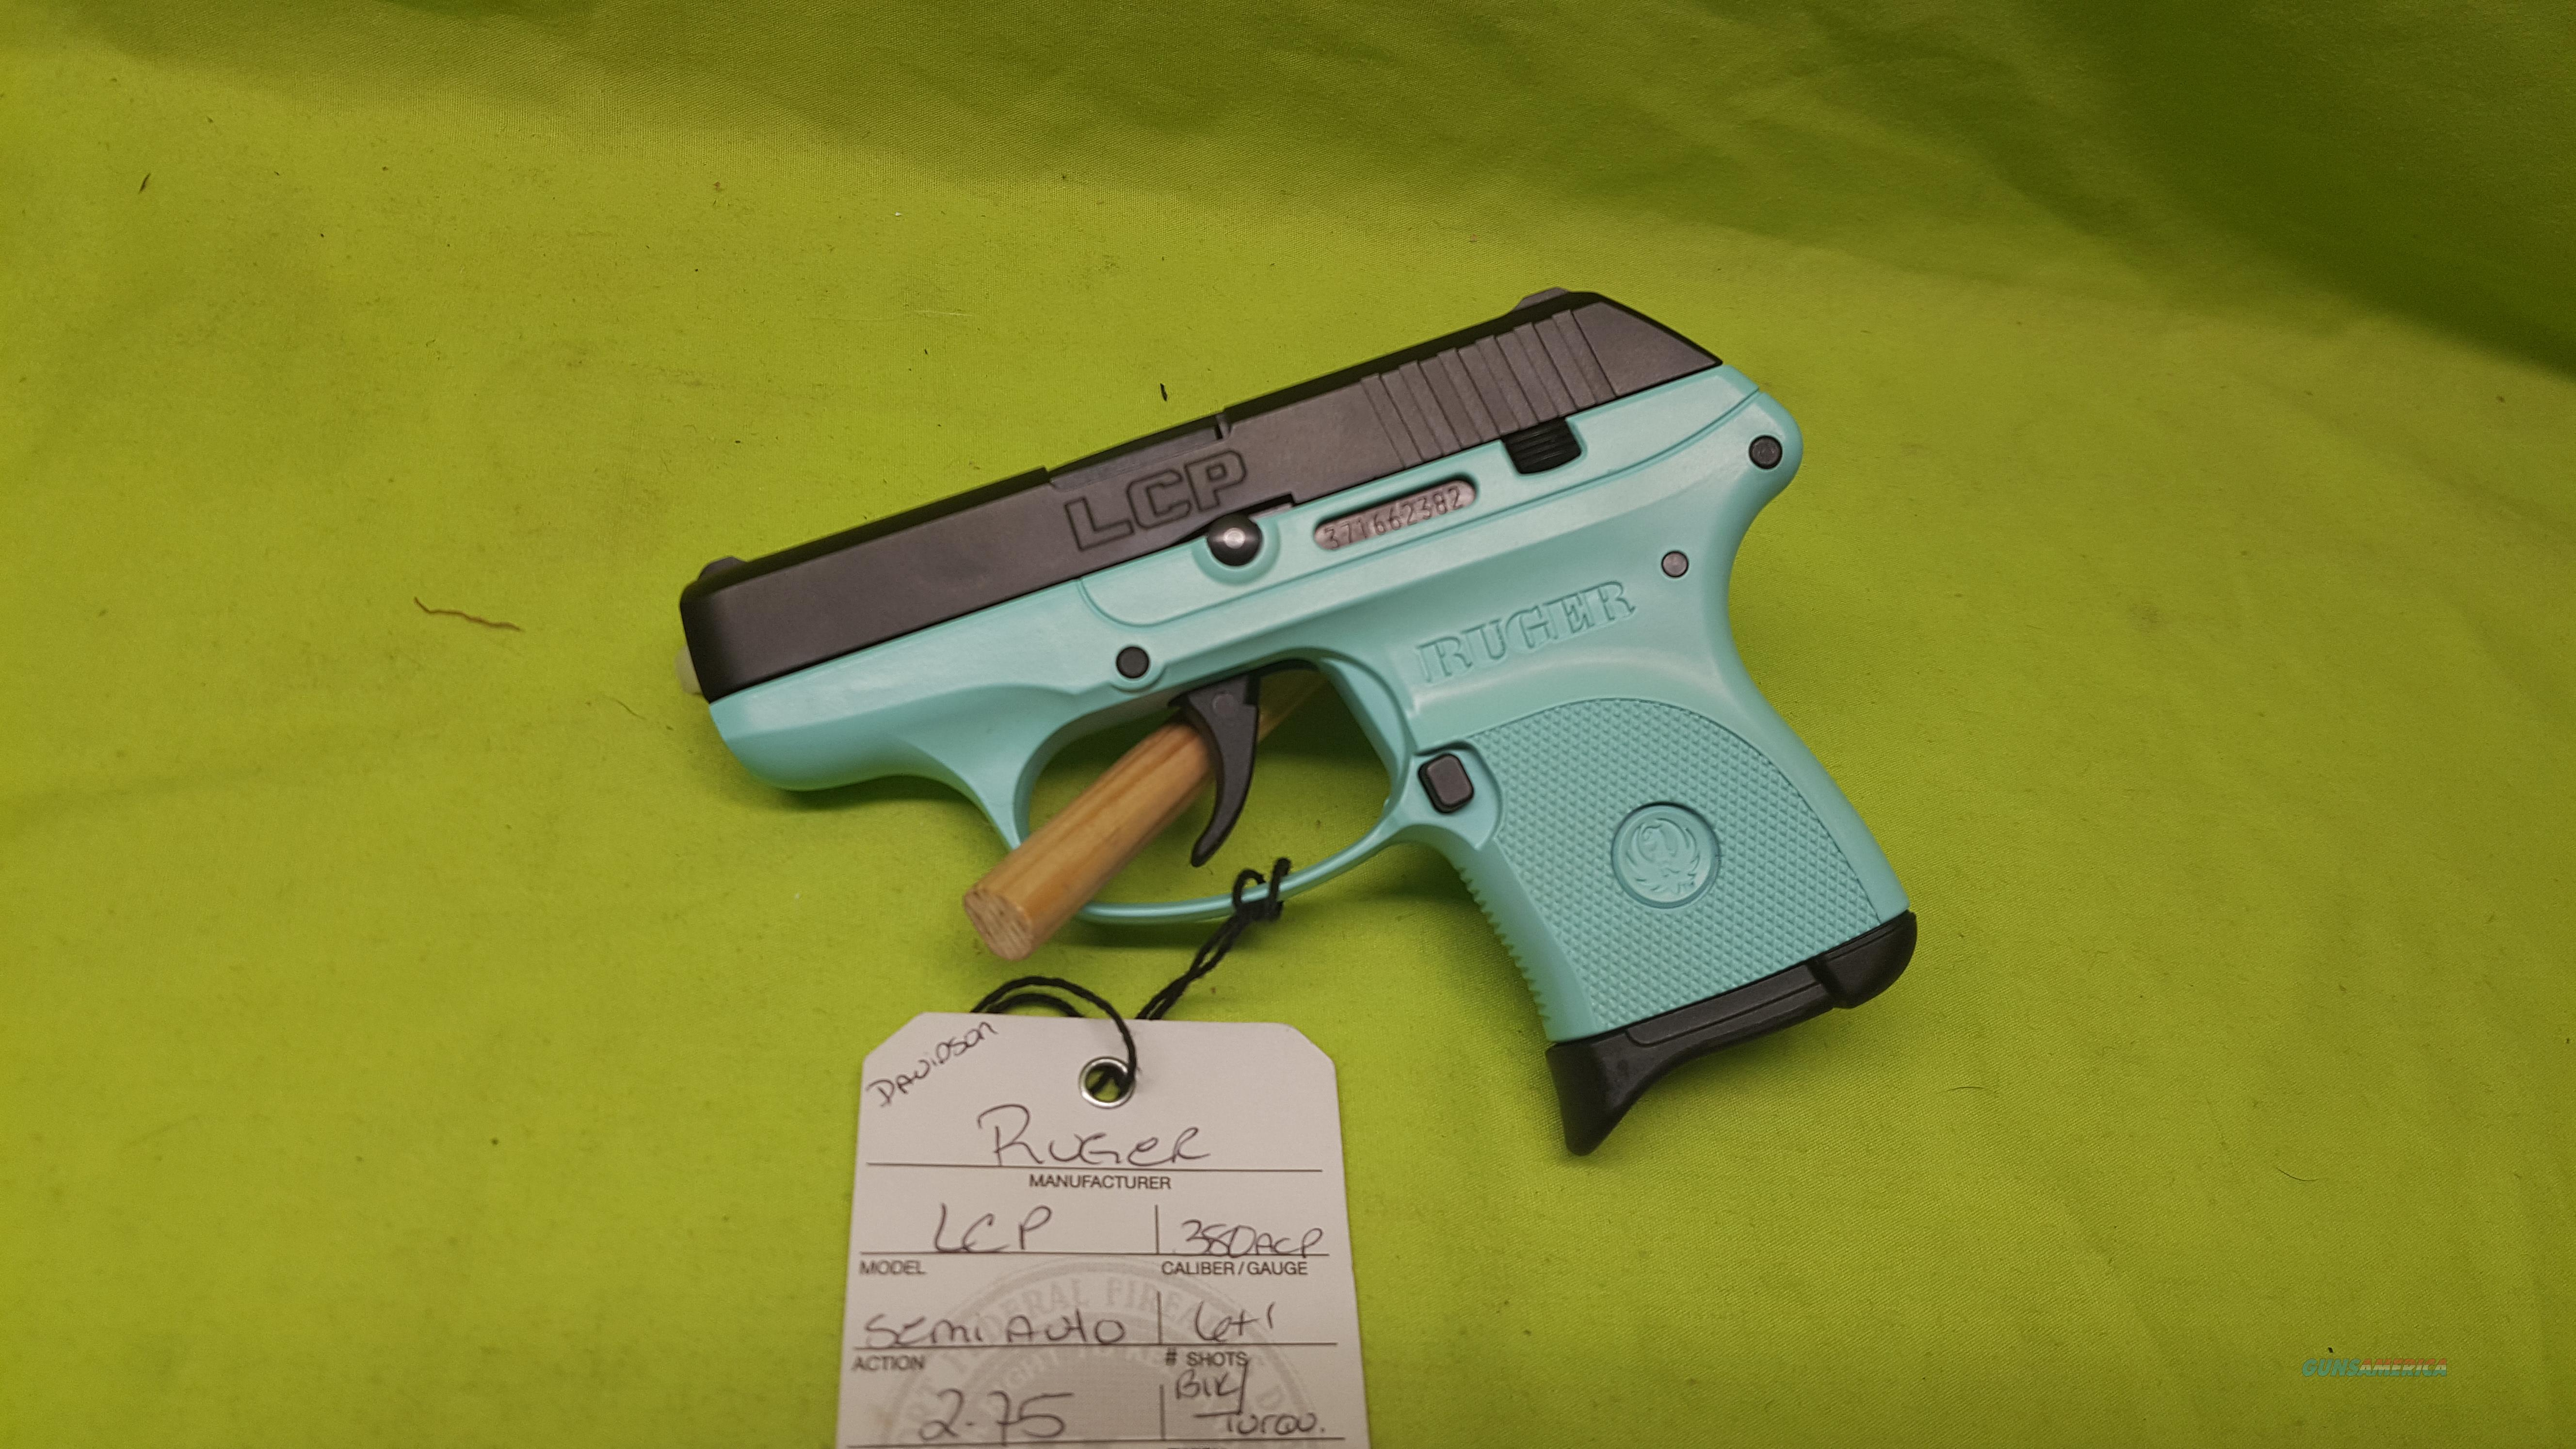 RUGER LCP 380 ACP 380ACP BLK / TURQUOISE 6RD 3746  Guns > Pistols > Ruger Semi-Auto Pistols > LCP